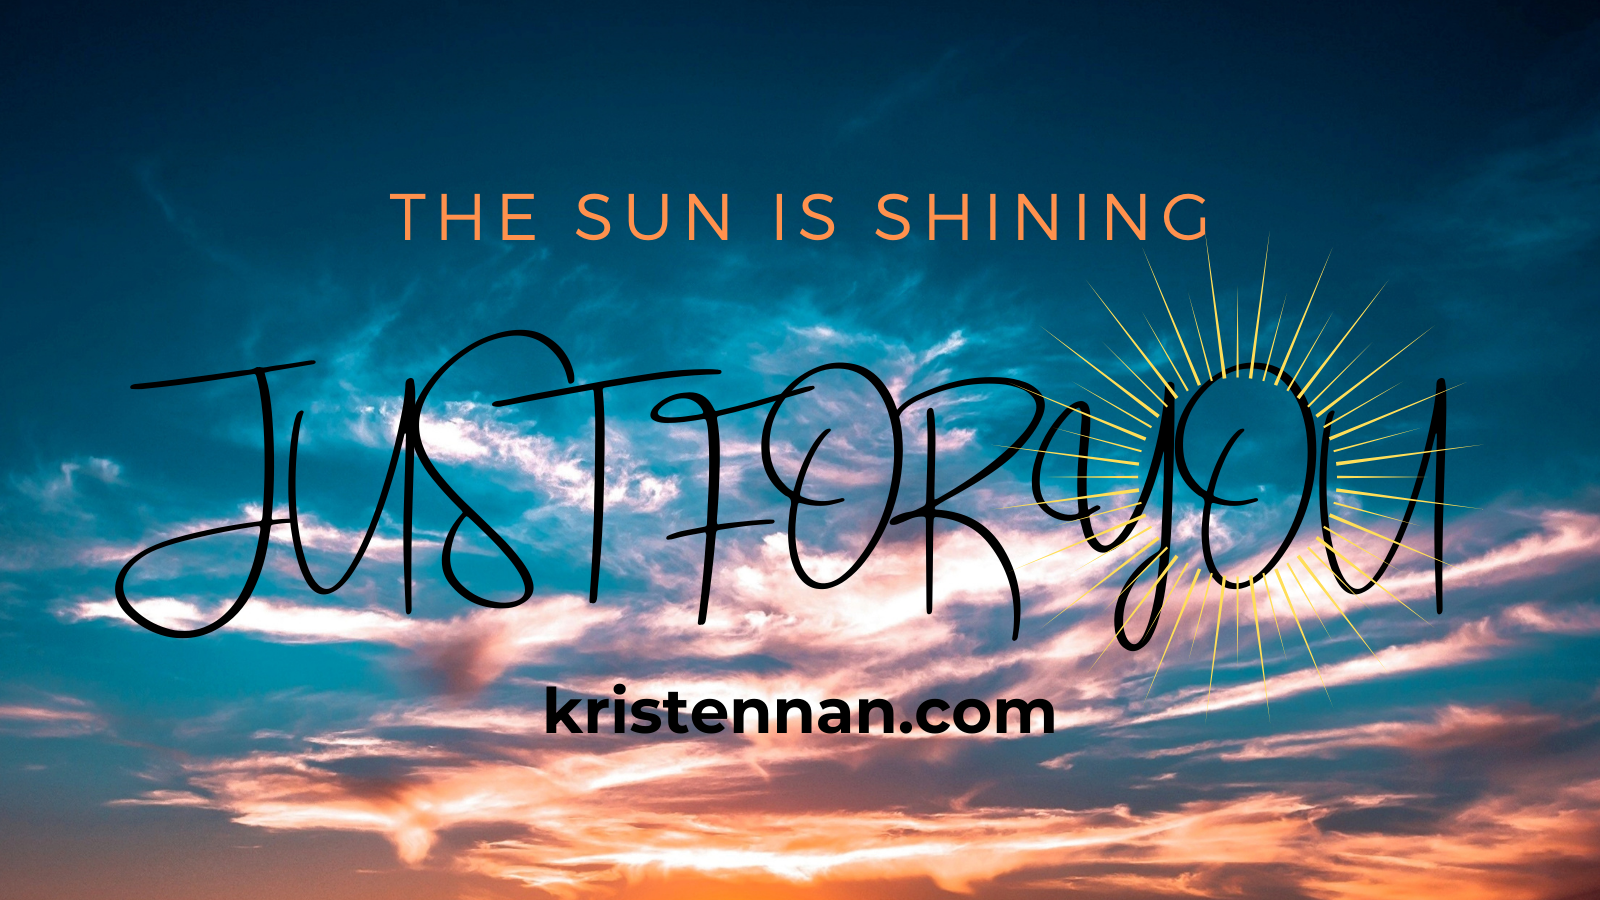 The Sun is Shining Just for You!